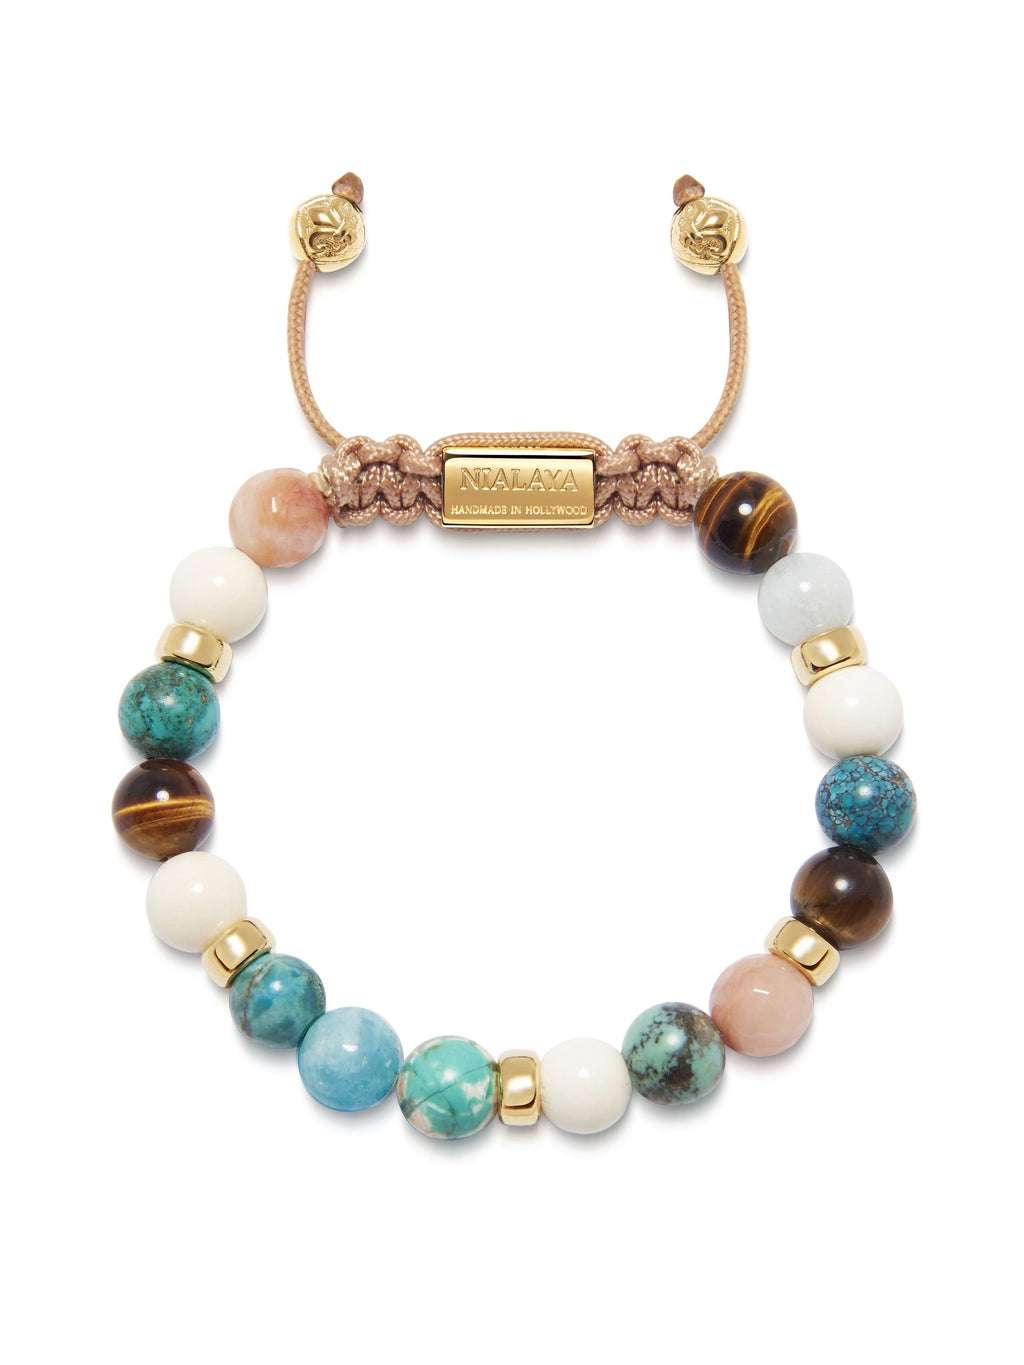 Women's Beaded Bracelet with Bali Turquoise, White Coral, Brown Tiger Eye and Pink Adventurine